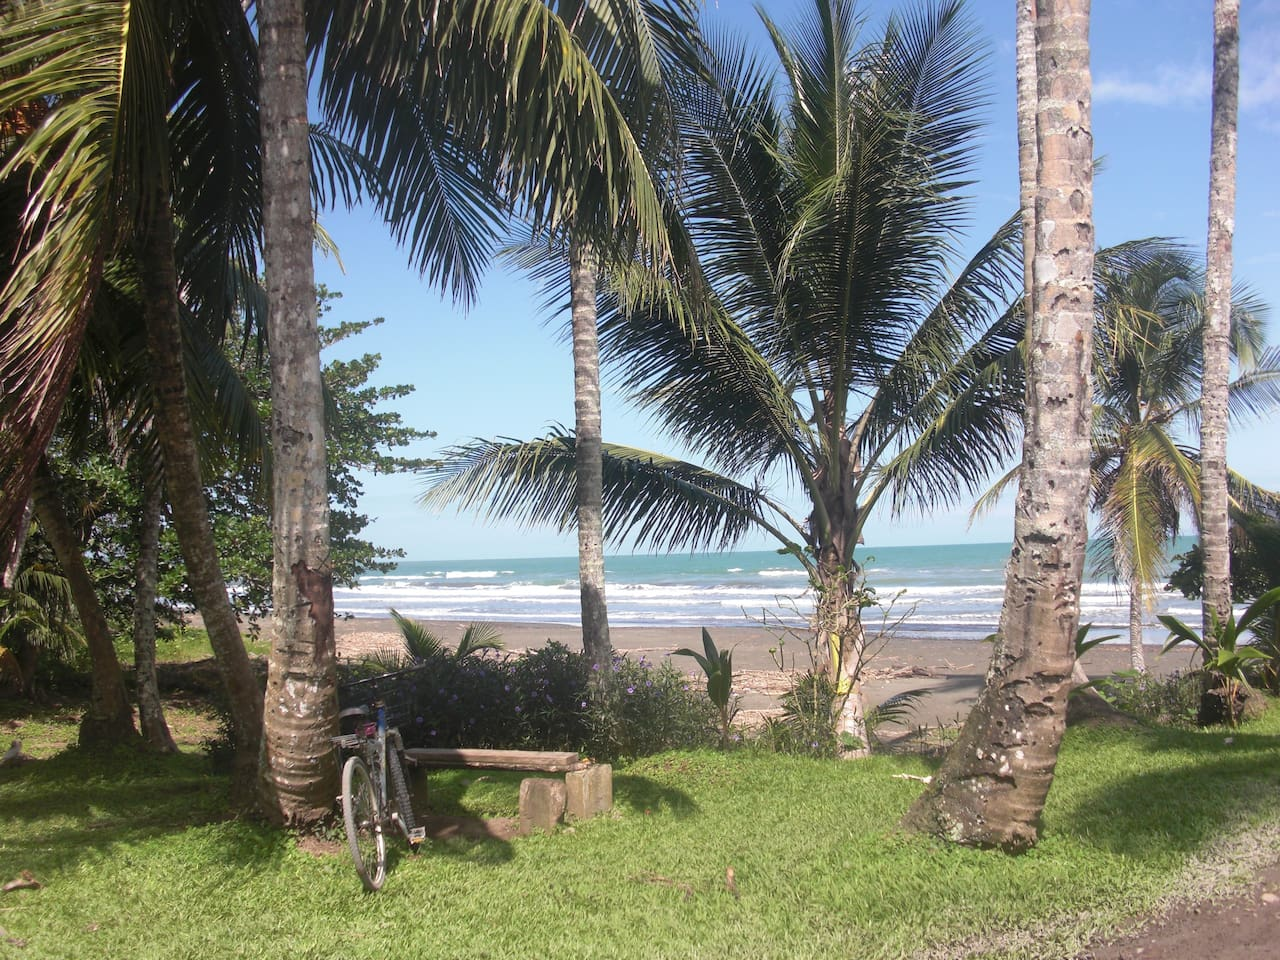 170 meters from Casa Verde, Playa Negra, Cahuita